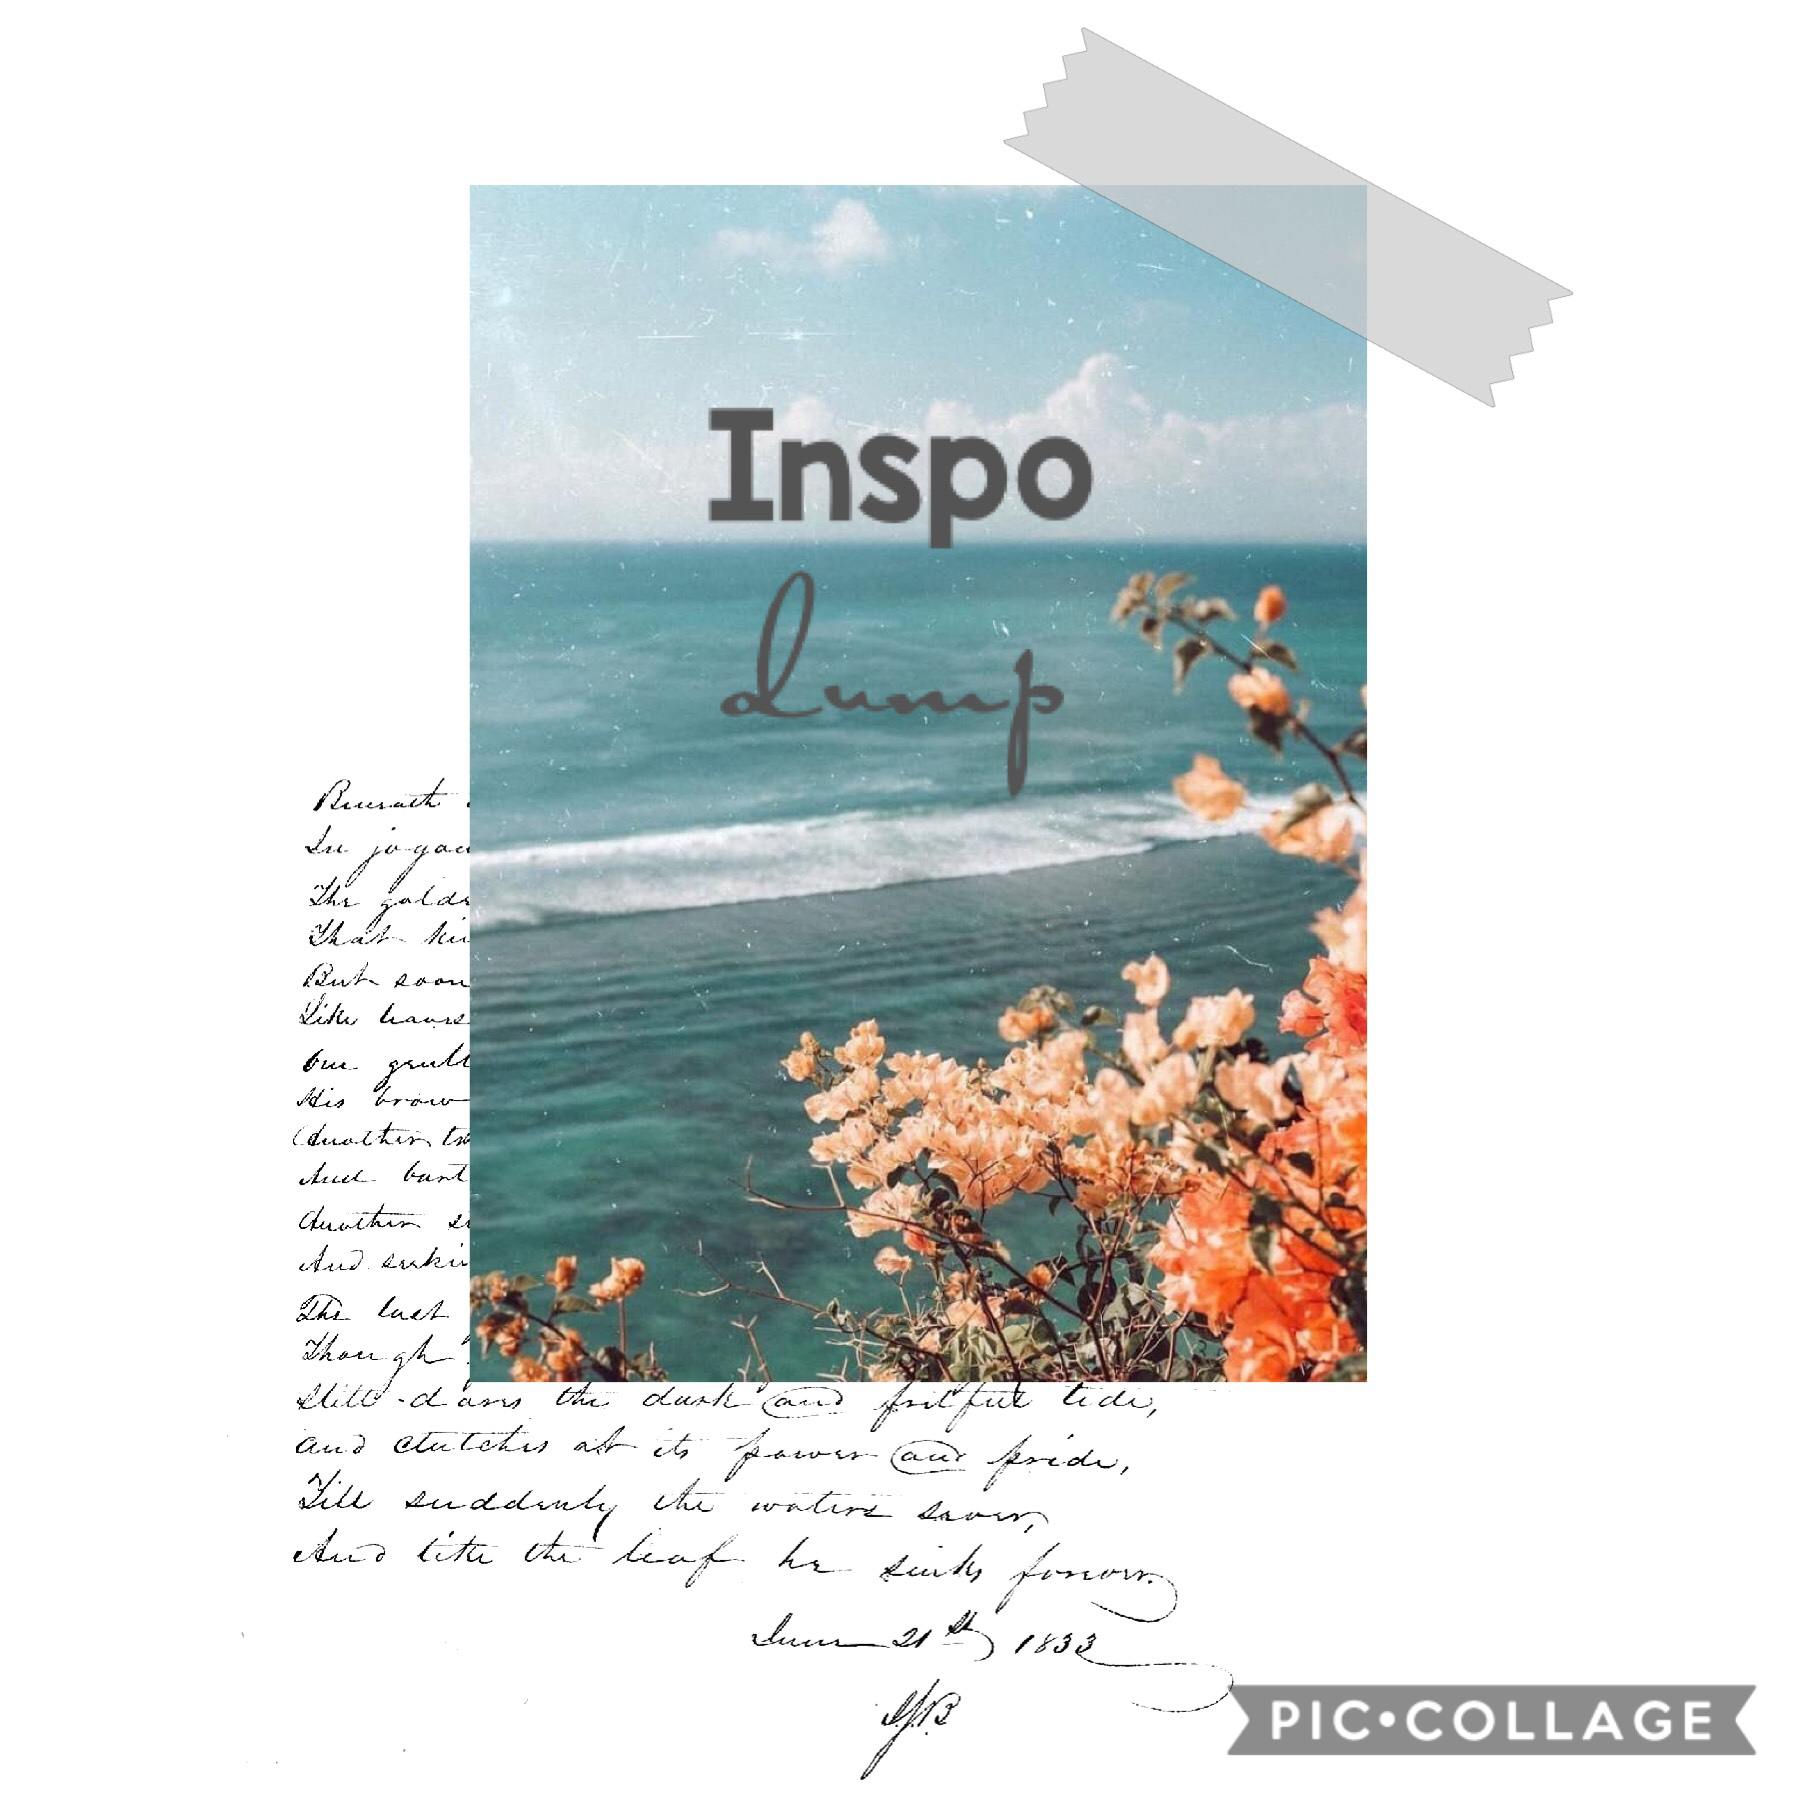 Hey guys! So right now I'm really low on inspo 😖 If you guys could maybe remix some backgrounds or quotes or pngs or ideas? Thank you 💕 Love Bec xx